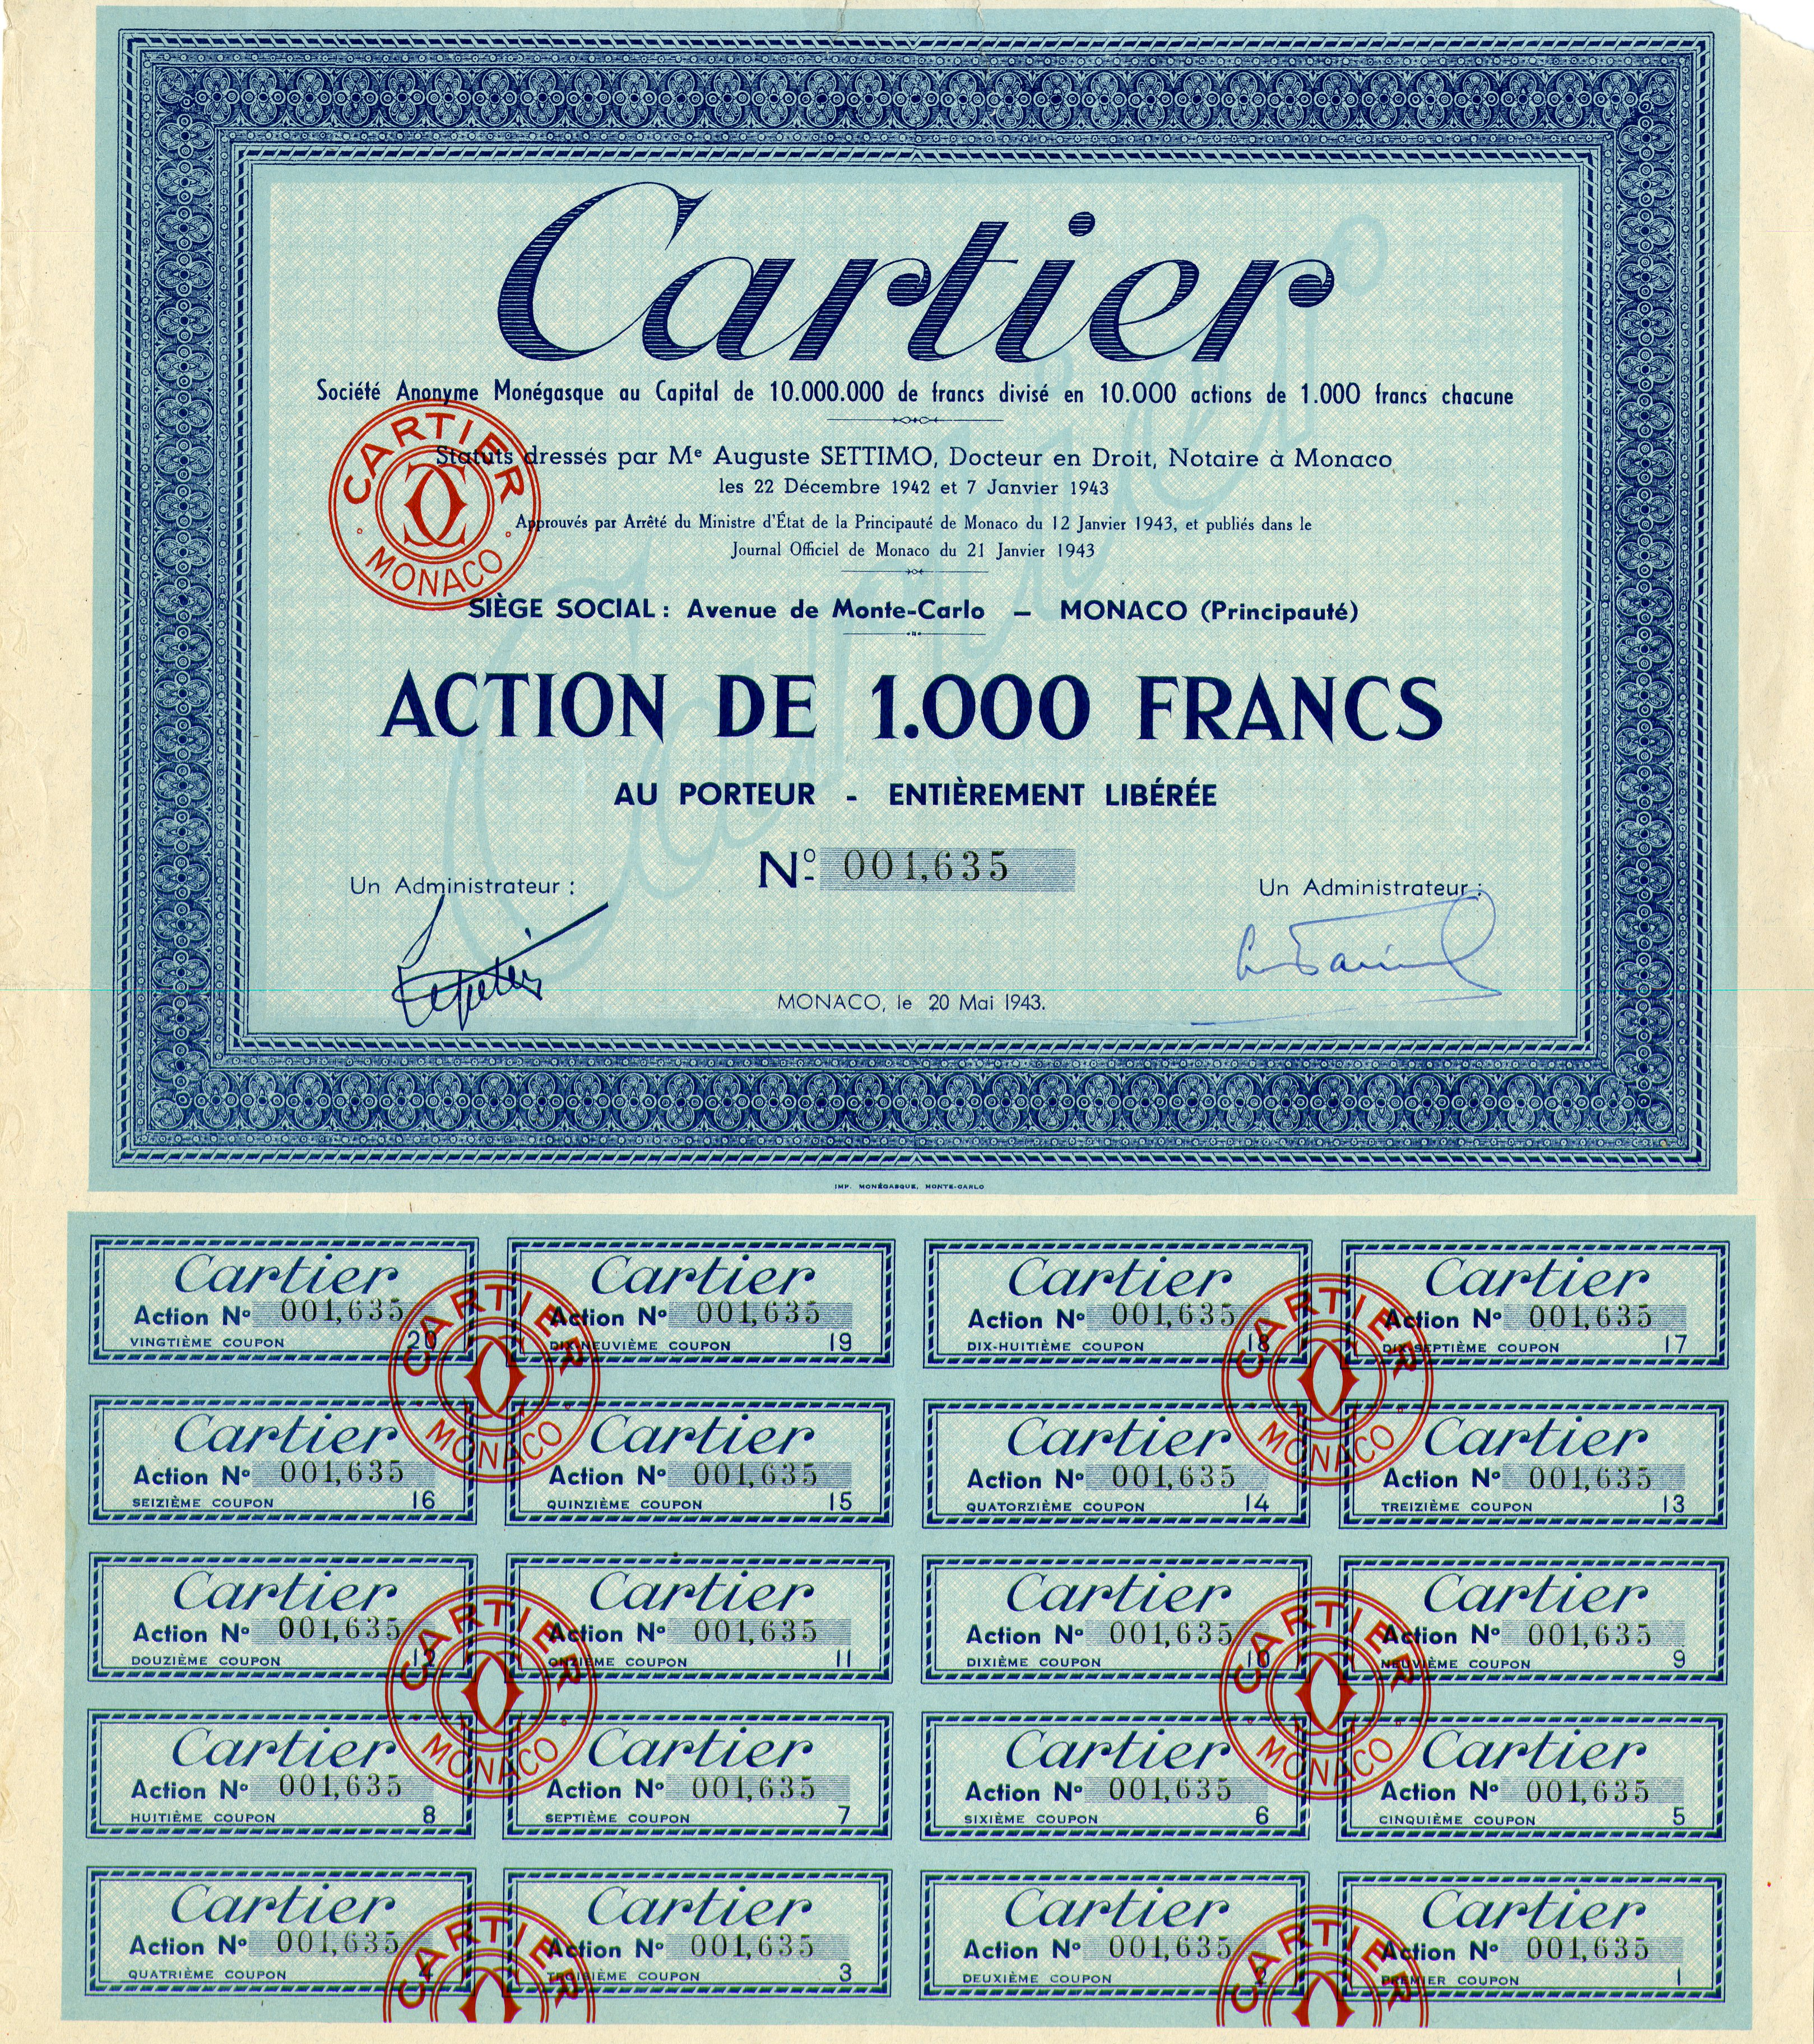 Cartier - Stock Certificate with Repairs